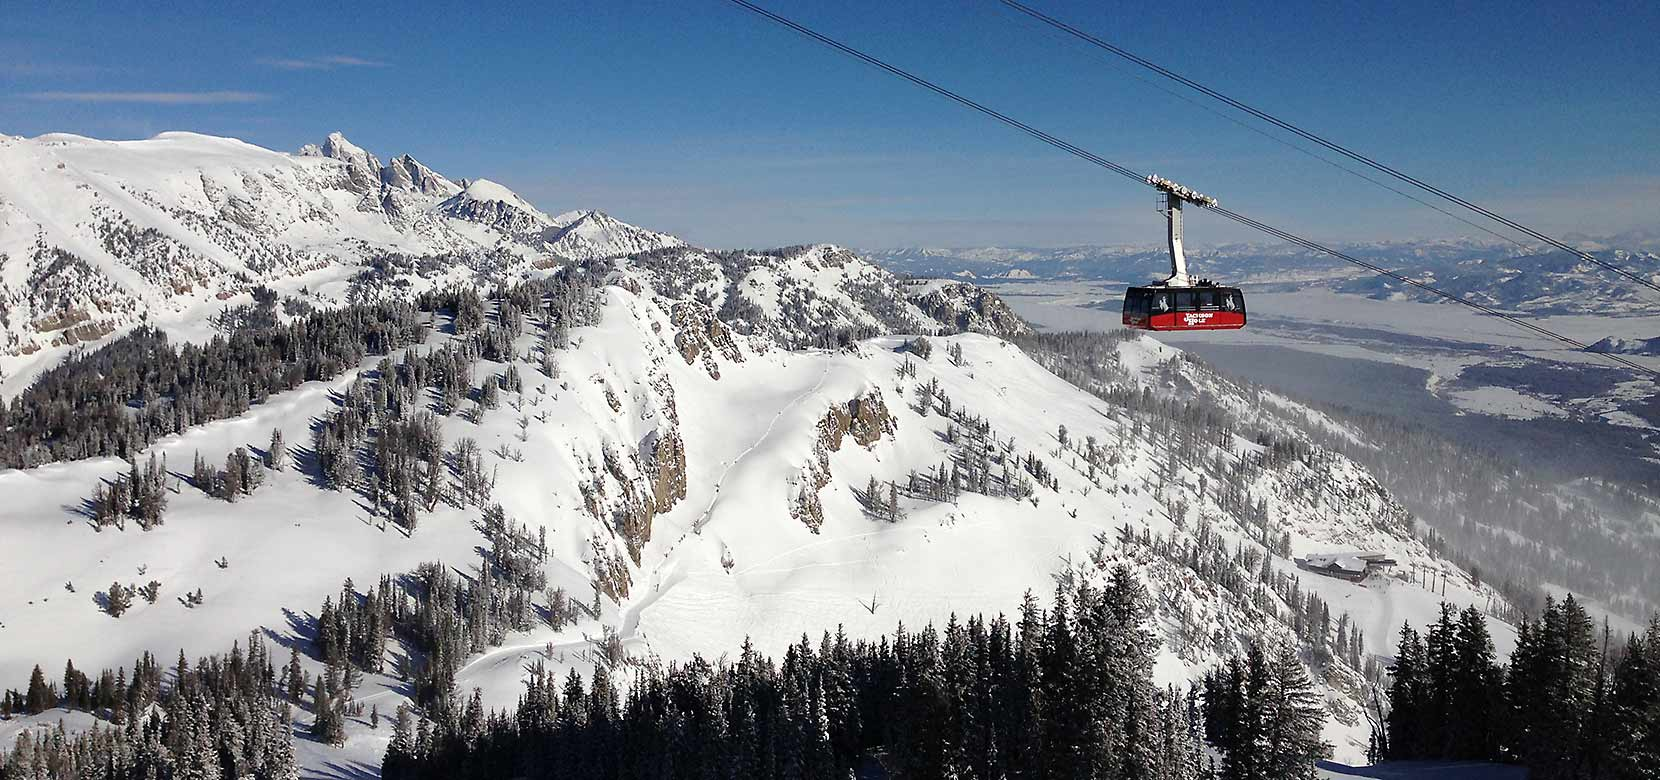 jackson hole mountain resort - jackson hole traveler